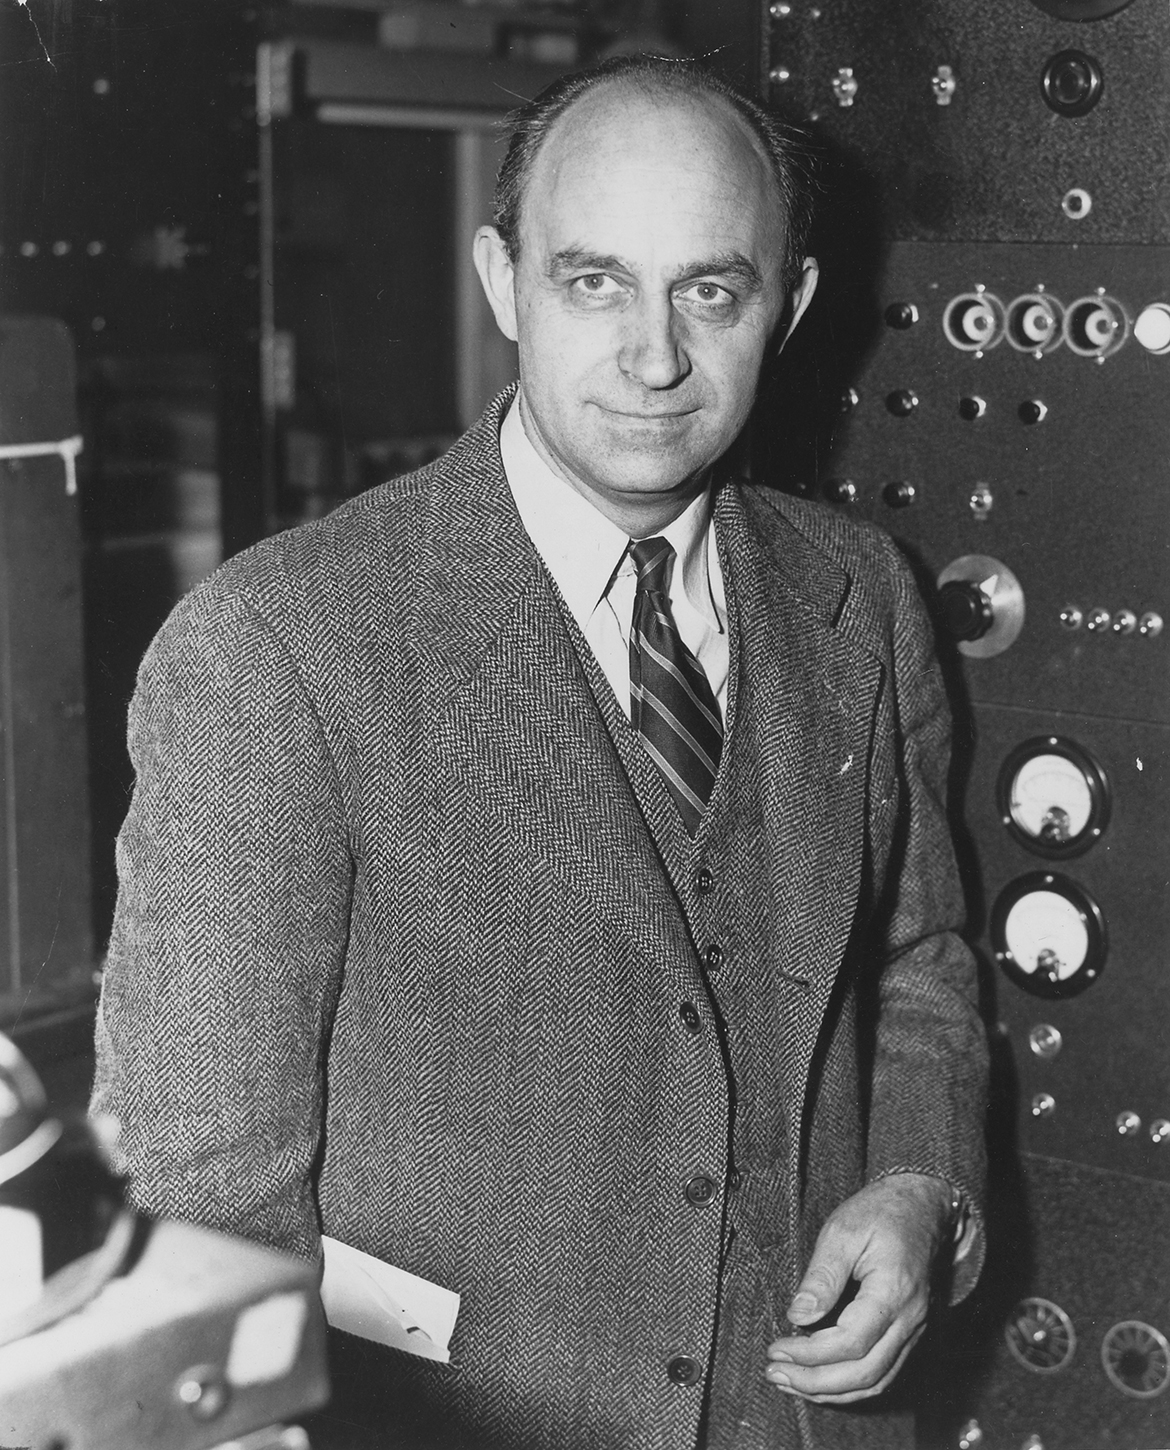 a biography of enrico fermi a physicist Biography enrico was born in rome on september 29, 1901 as a son of alberto fermi, an administrative employee of the italian railroads, and ida de gattis, a former school teacher fermi emilio segrè, enrico fermi, physicist (1970.